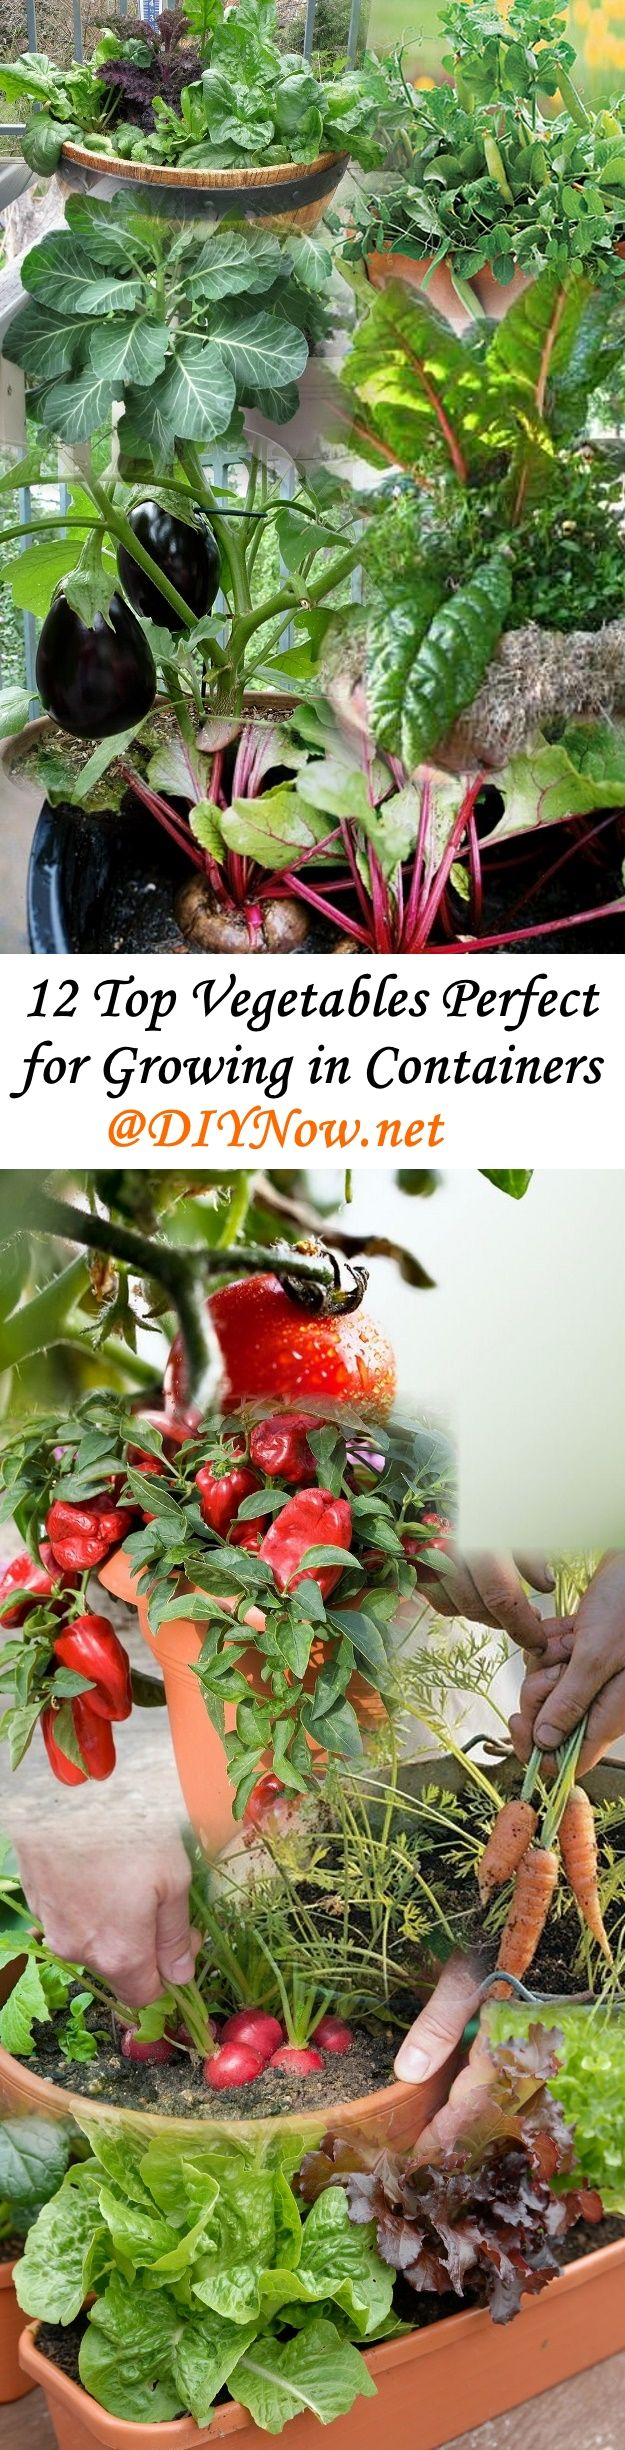 12 Top Vegetables Perfect for Growing in Containers